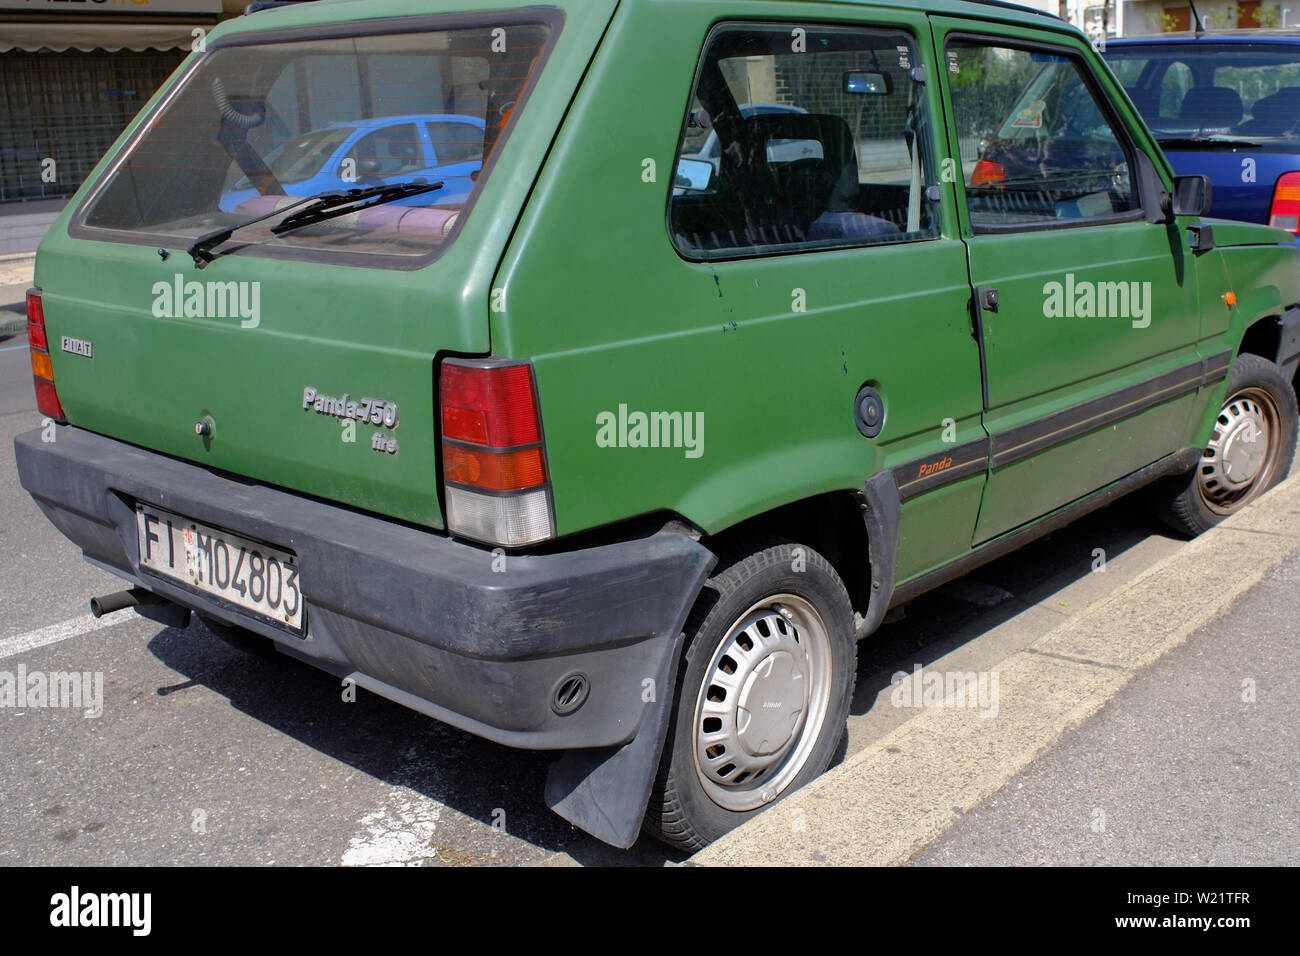 Vintage Green Fiat Panda Parked In A Urban Scenario Florence Italy Stock Photo Alamy